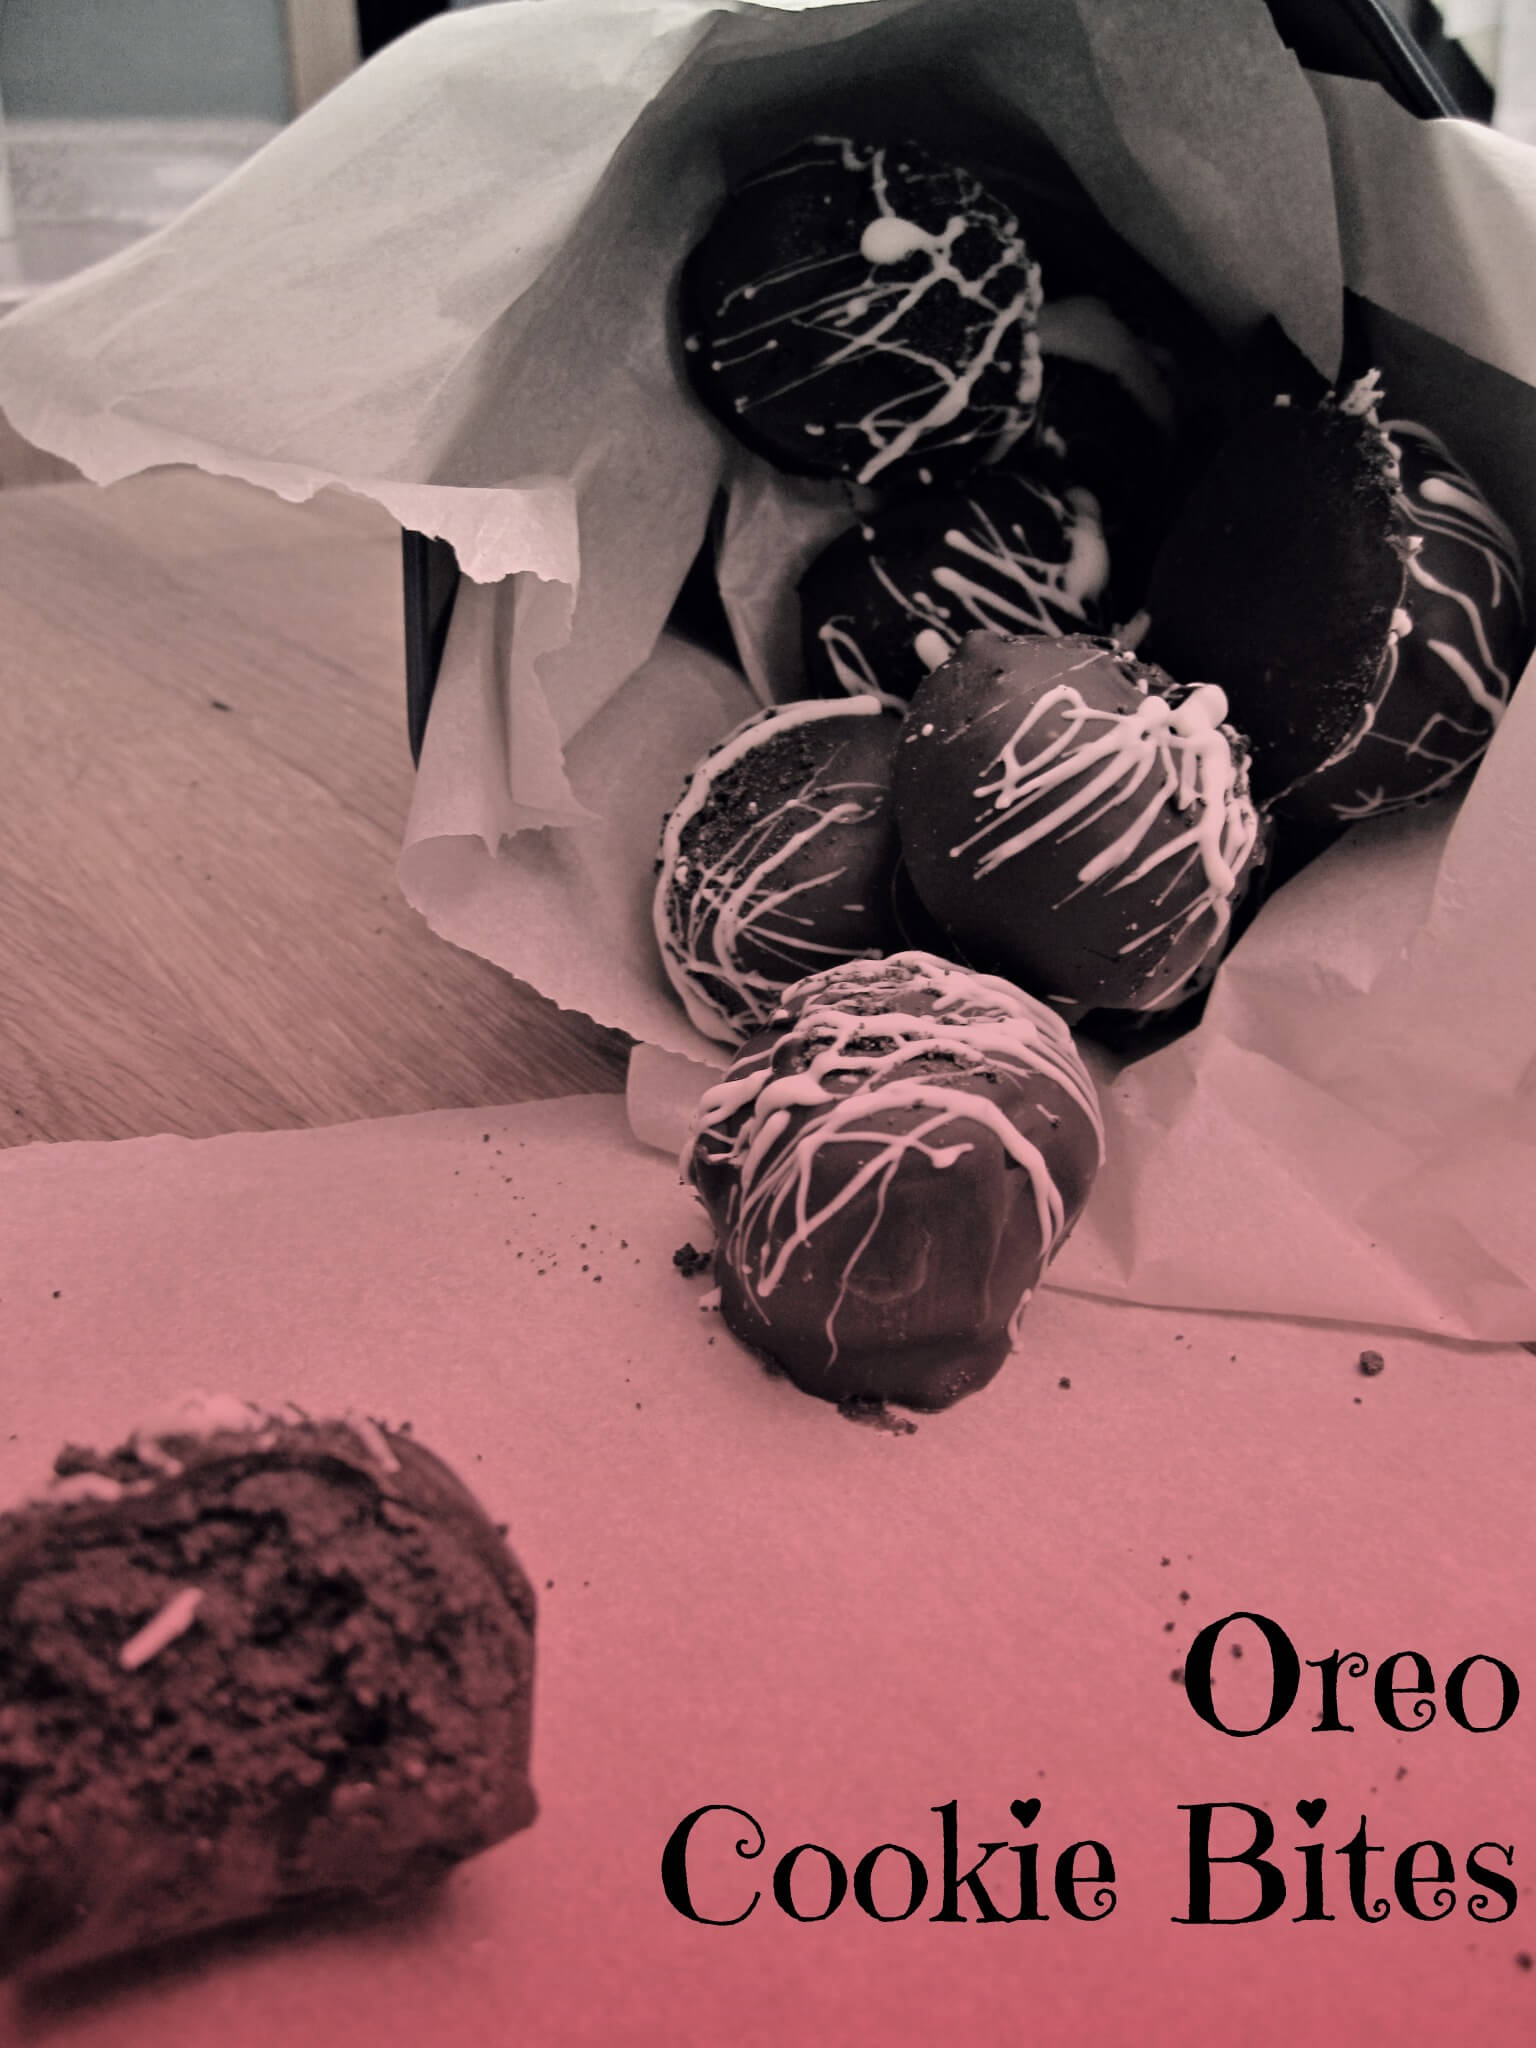 orea truffles for valentines day